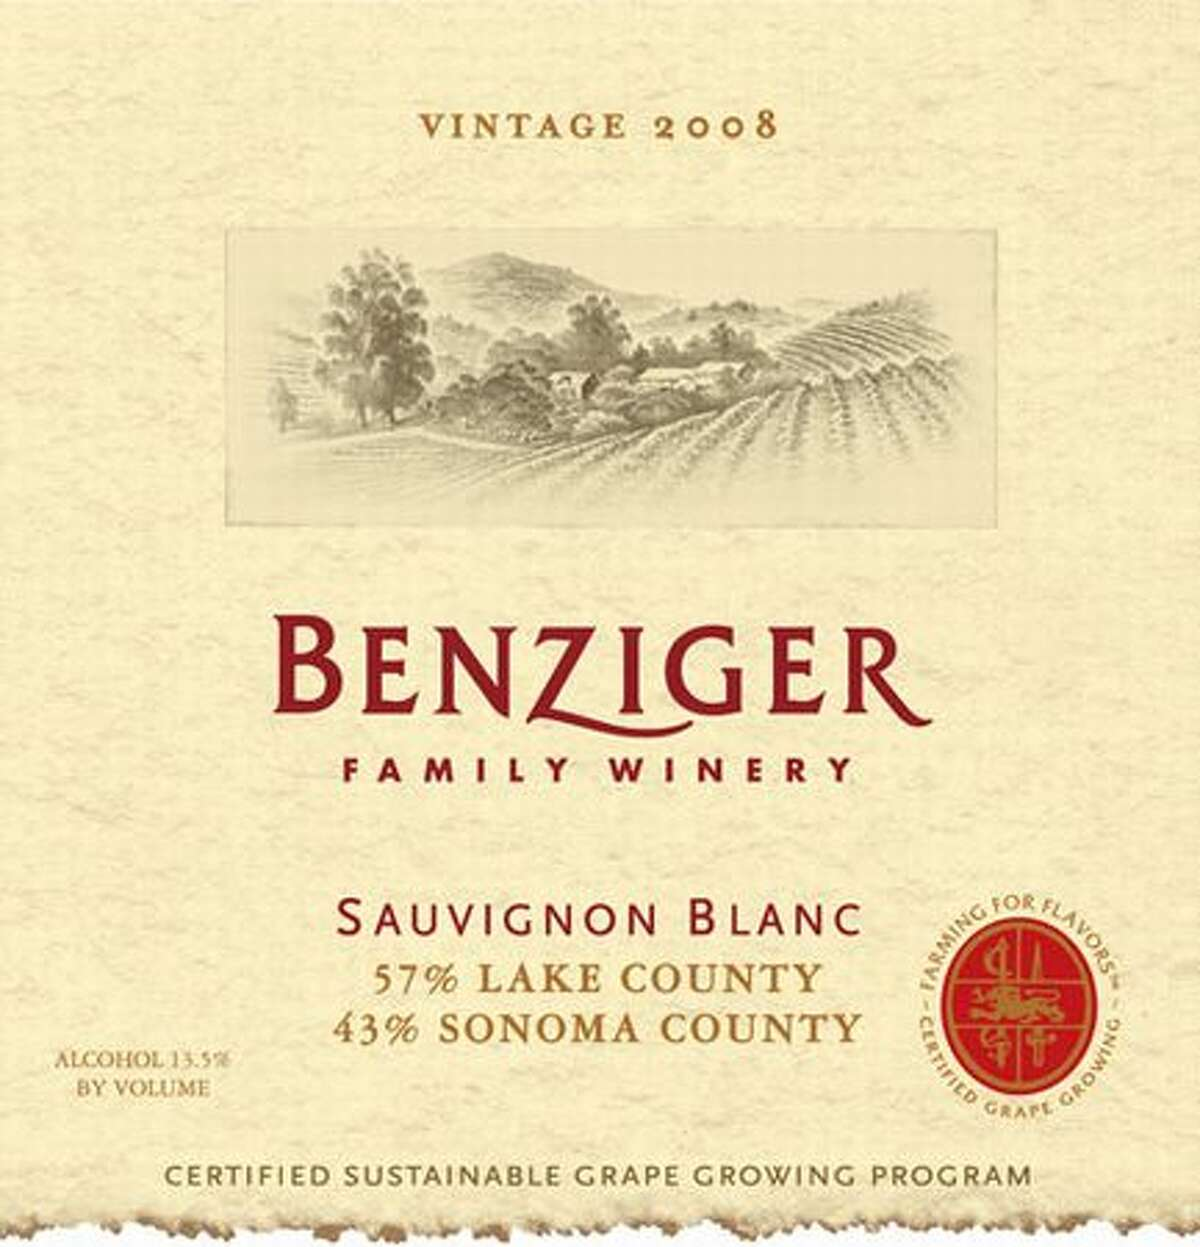 2008 Benziger Sauvignon Blanc, Signaterra Shone Farm Vineyard, Russian River Valley ($26) Benziger hits it again with what seems to be a mother lode for Sauvignon Blanc, run by Santa Rosa Junior College. Big, energizing scents of chive, grass and aloe, with ripe pomelo, pineapple and green papaya rounding it out. A heady, strong style.